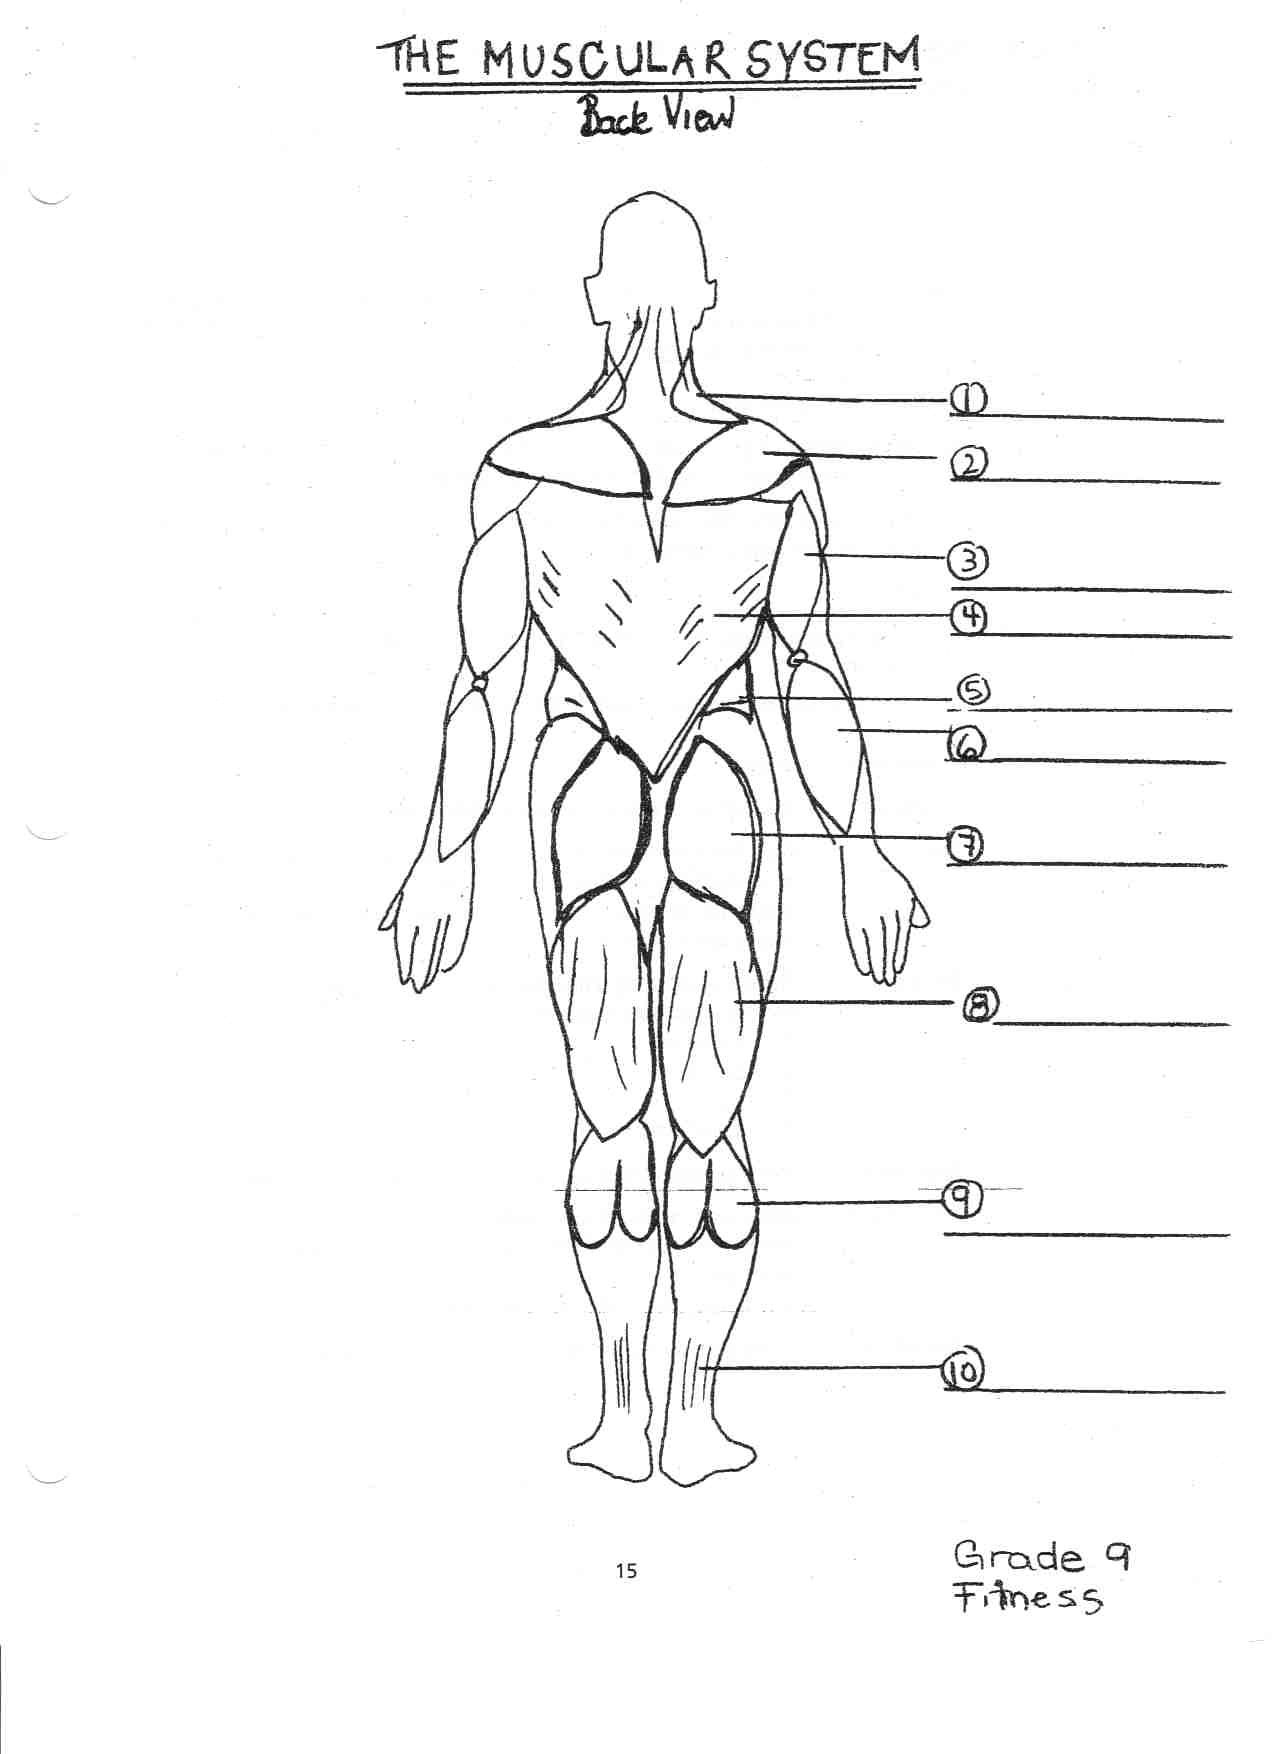 Unlabeled Body Diagram